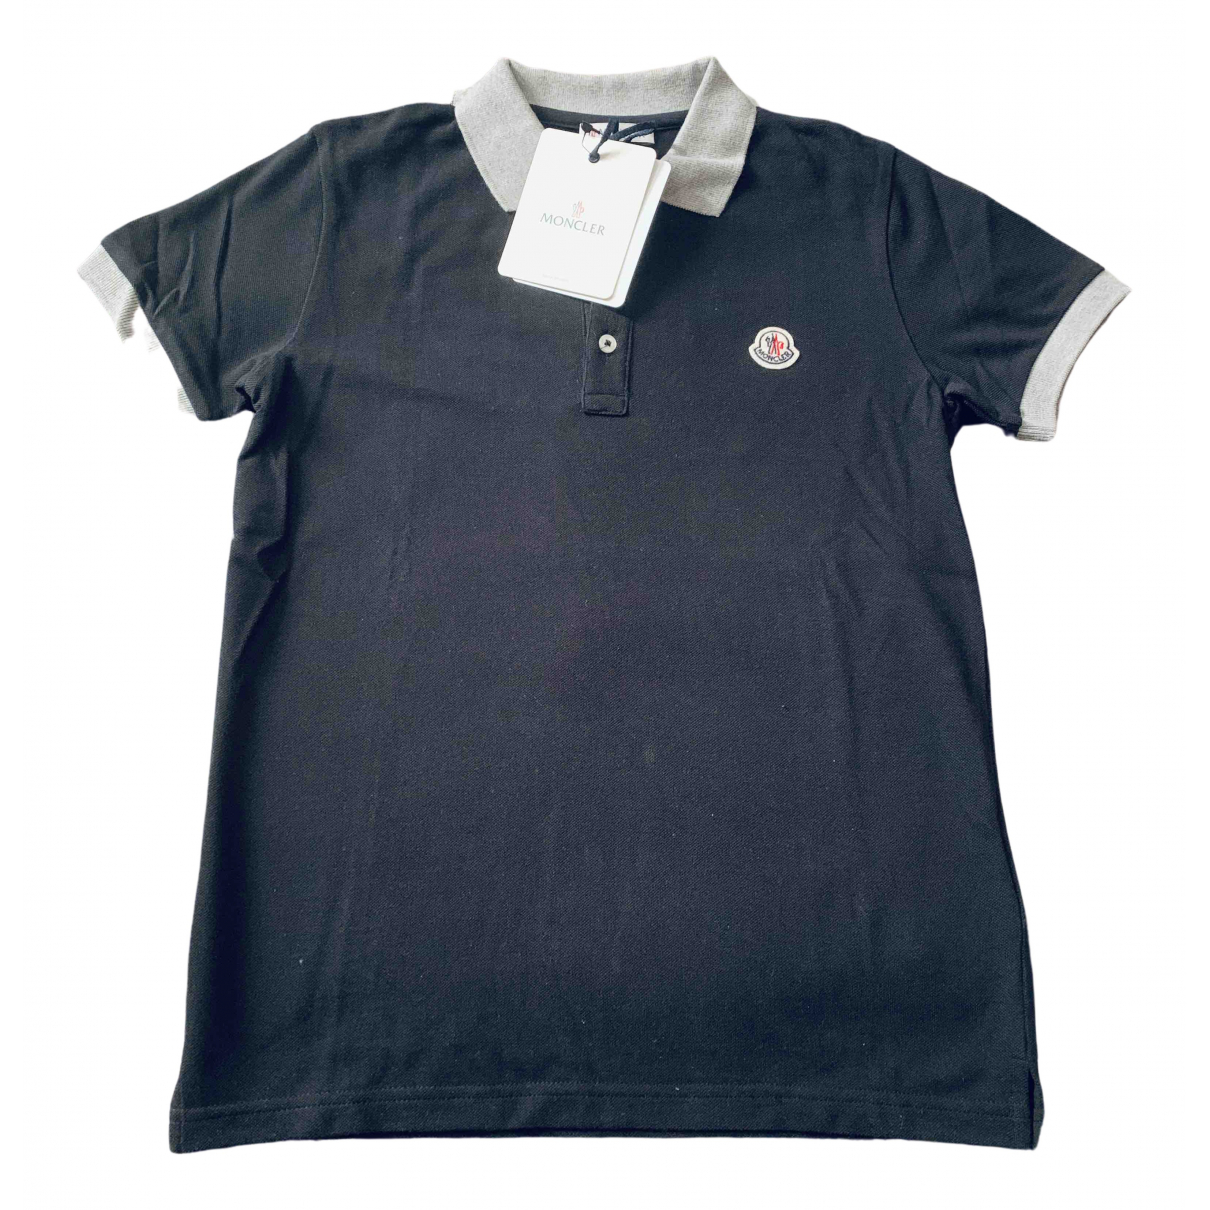 Moncler N Blue Cotton  top for Kids 10 years - up to 142cm FR